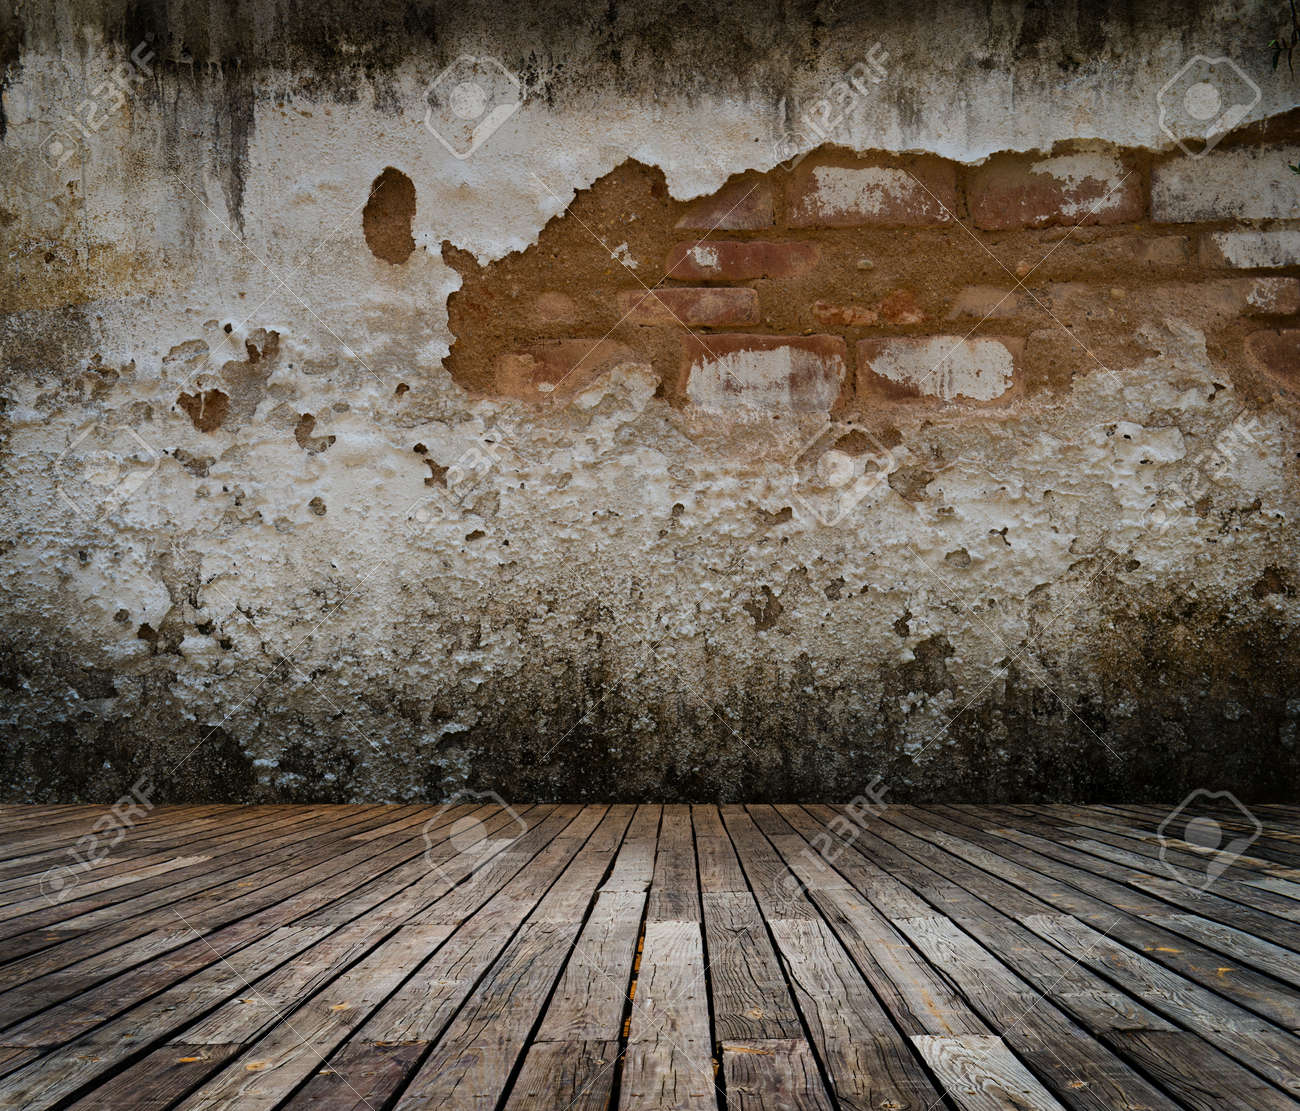 Stock photo abstract the old wood floor and brick wall for background